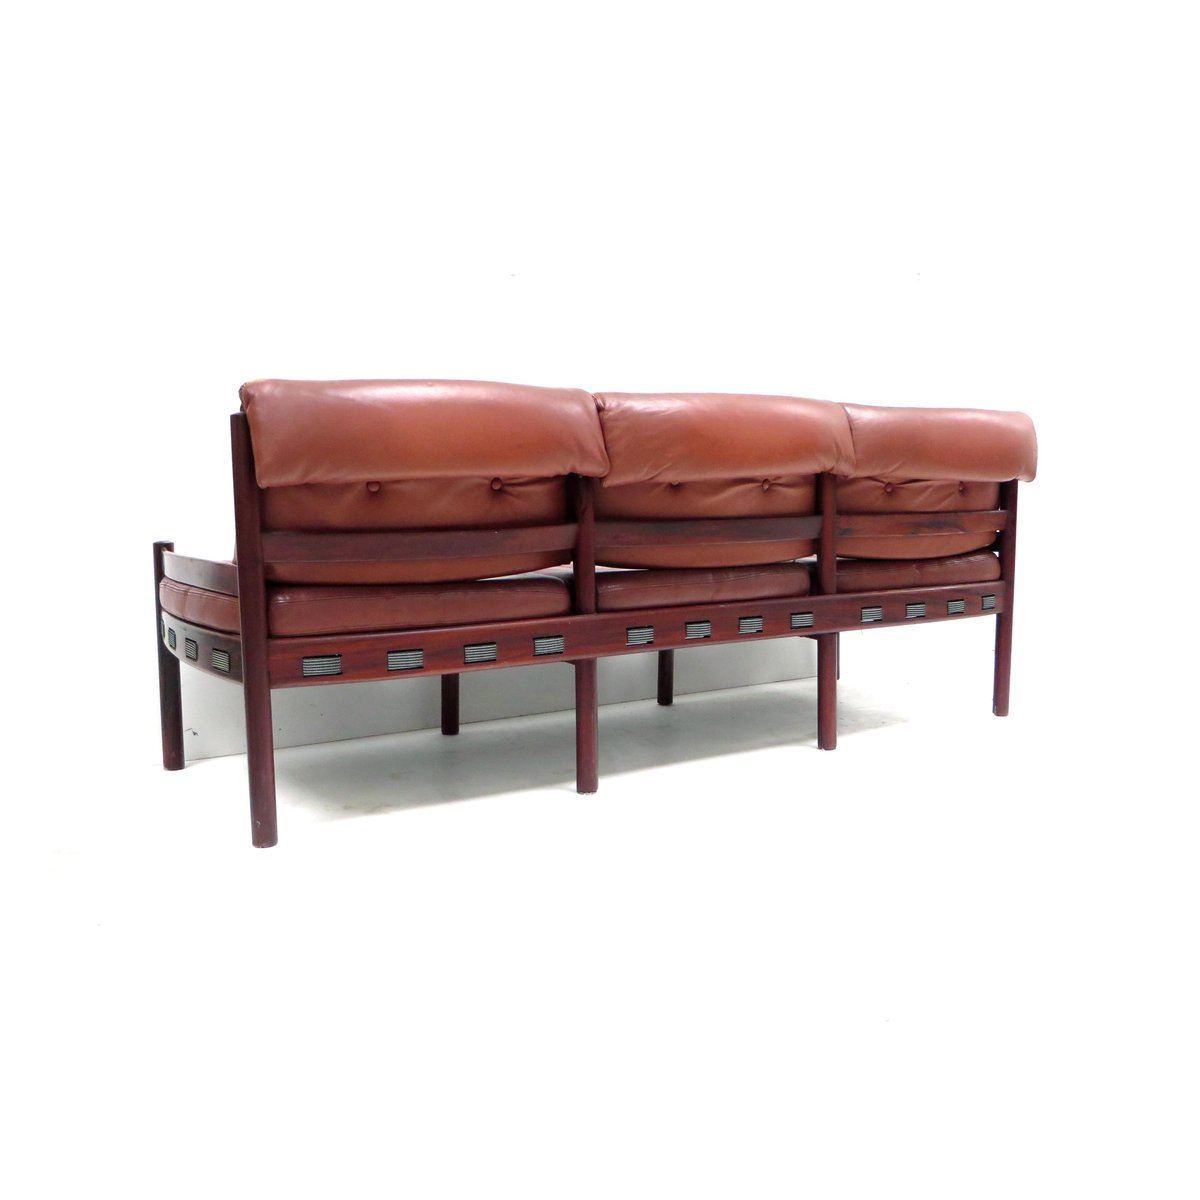 leather corner sofa spain clarke fabric queen sleeper bed with table 1960s for sale at pamono